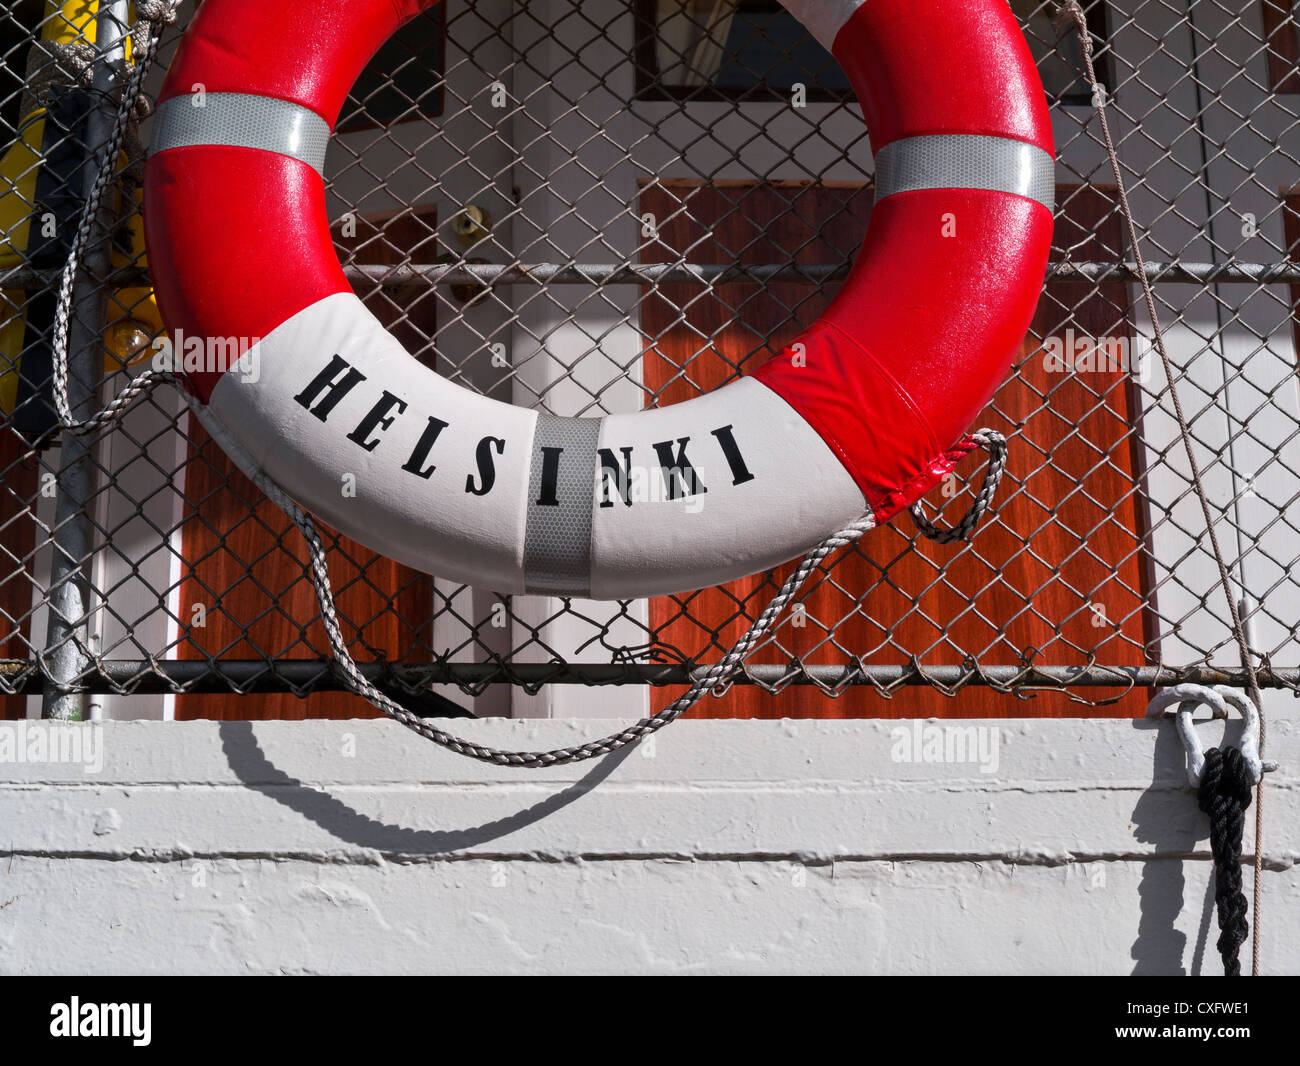 Lifebelt on tourist cruise boat named Helsinki in Helsinki Harbour Finland - Stock Image